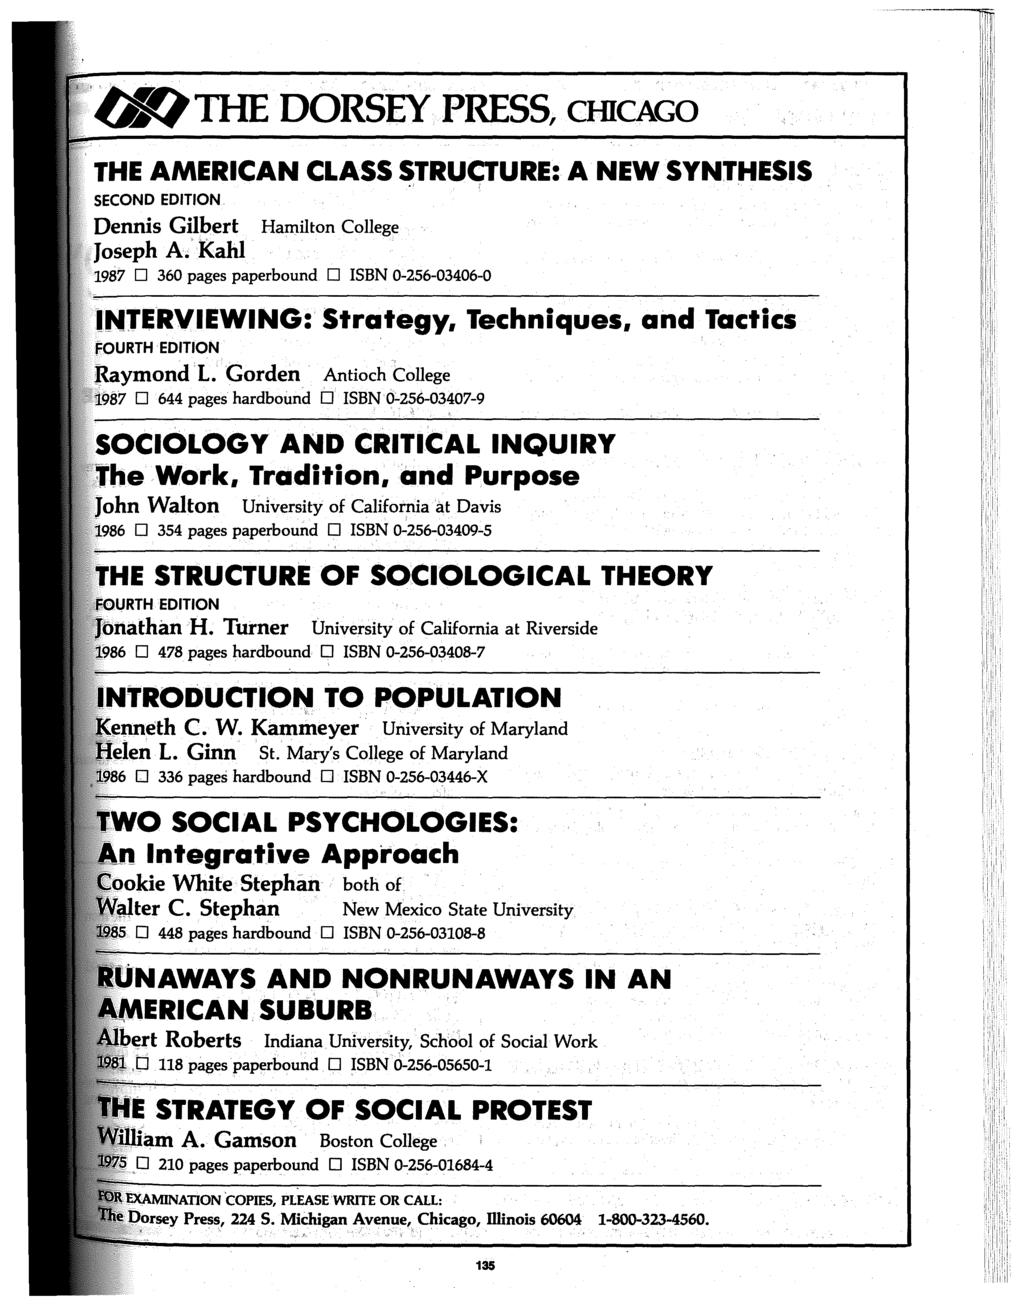 '(J'hTHE DORSEY PRESS, CHICAGO THE AMERICAN CLASS ~TRUCTURE: A NEW SYNTHESIS SECOND EDITION Dennis Gilbert Hamilton College,Joseph A.